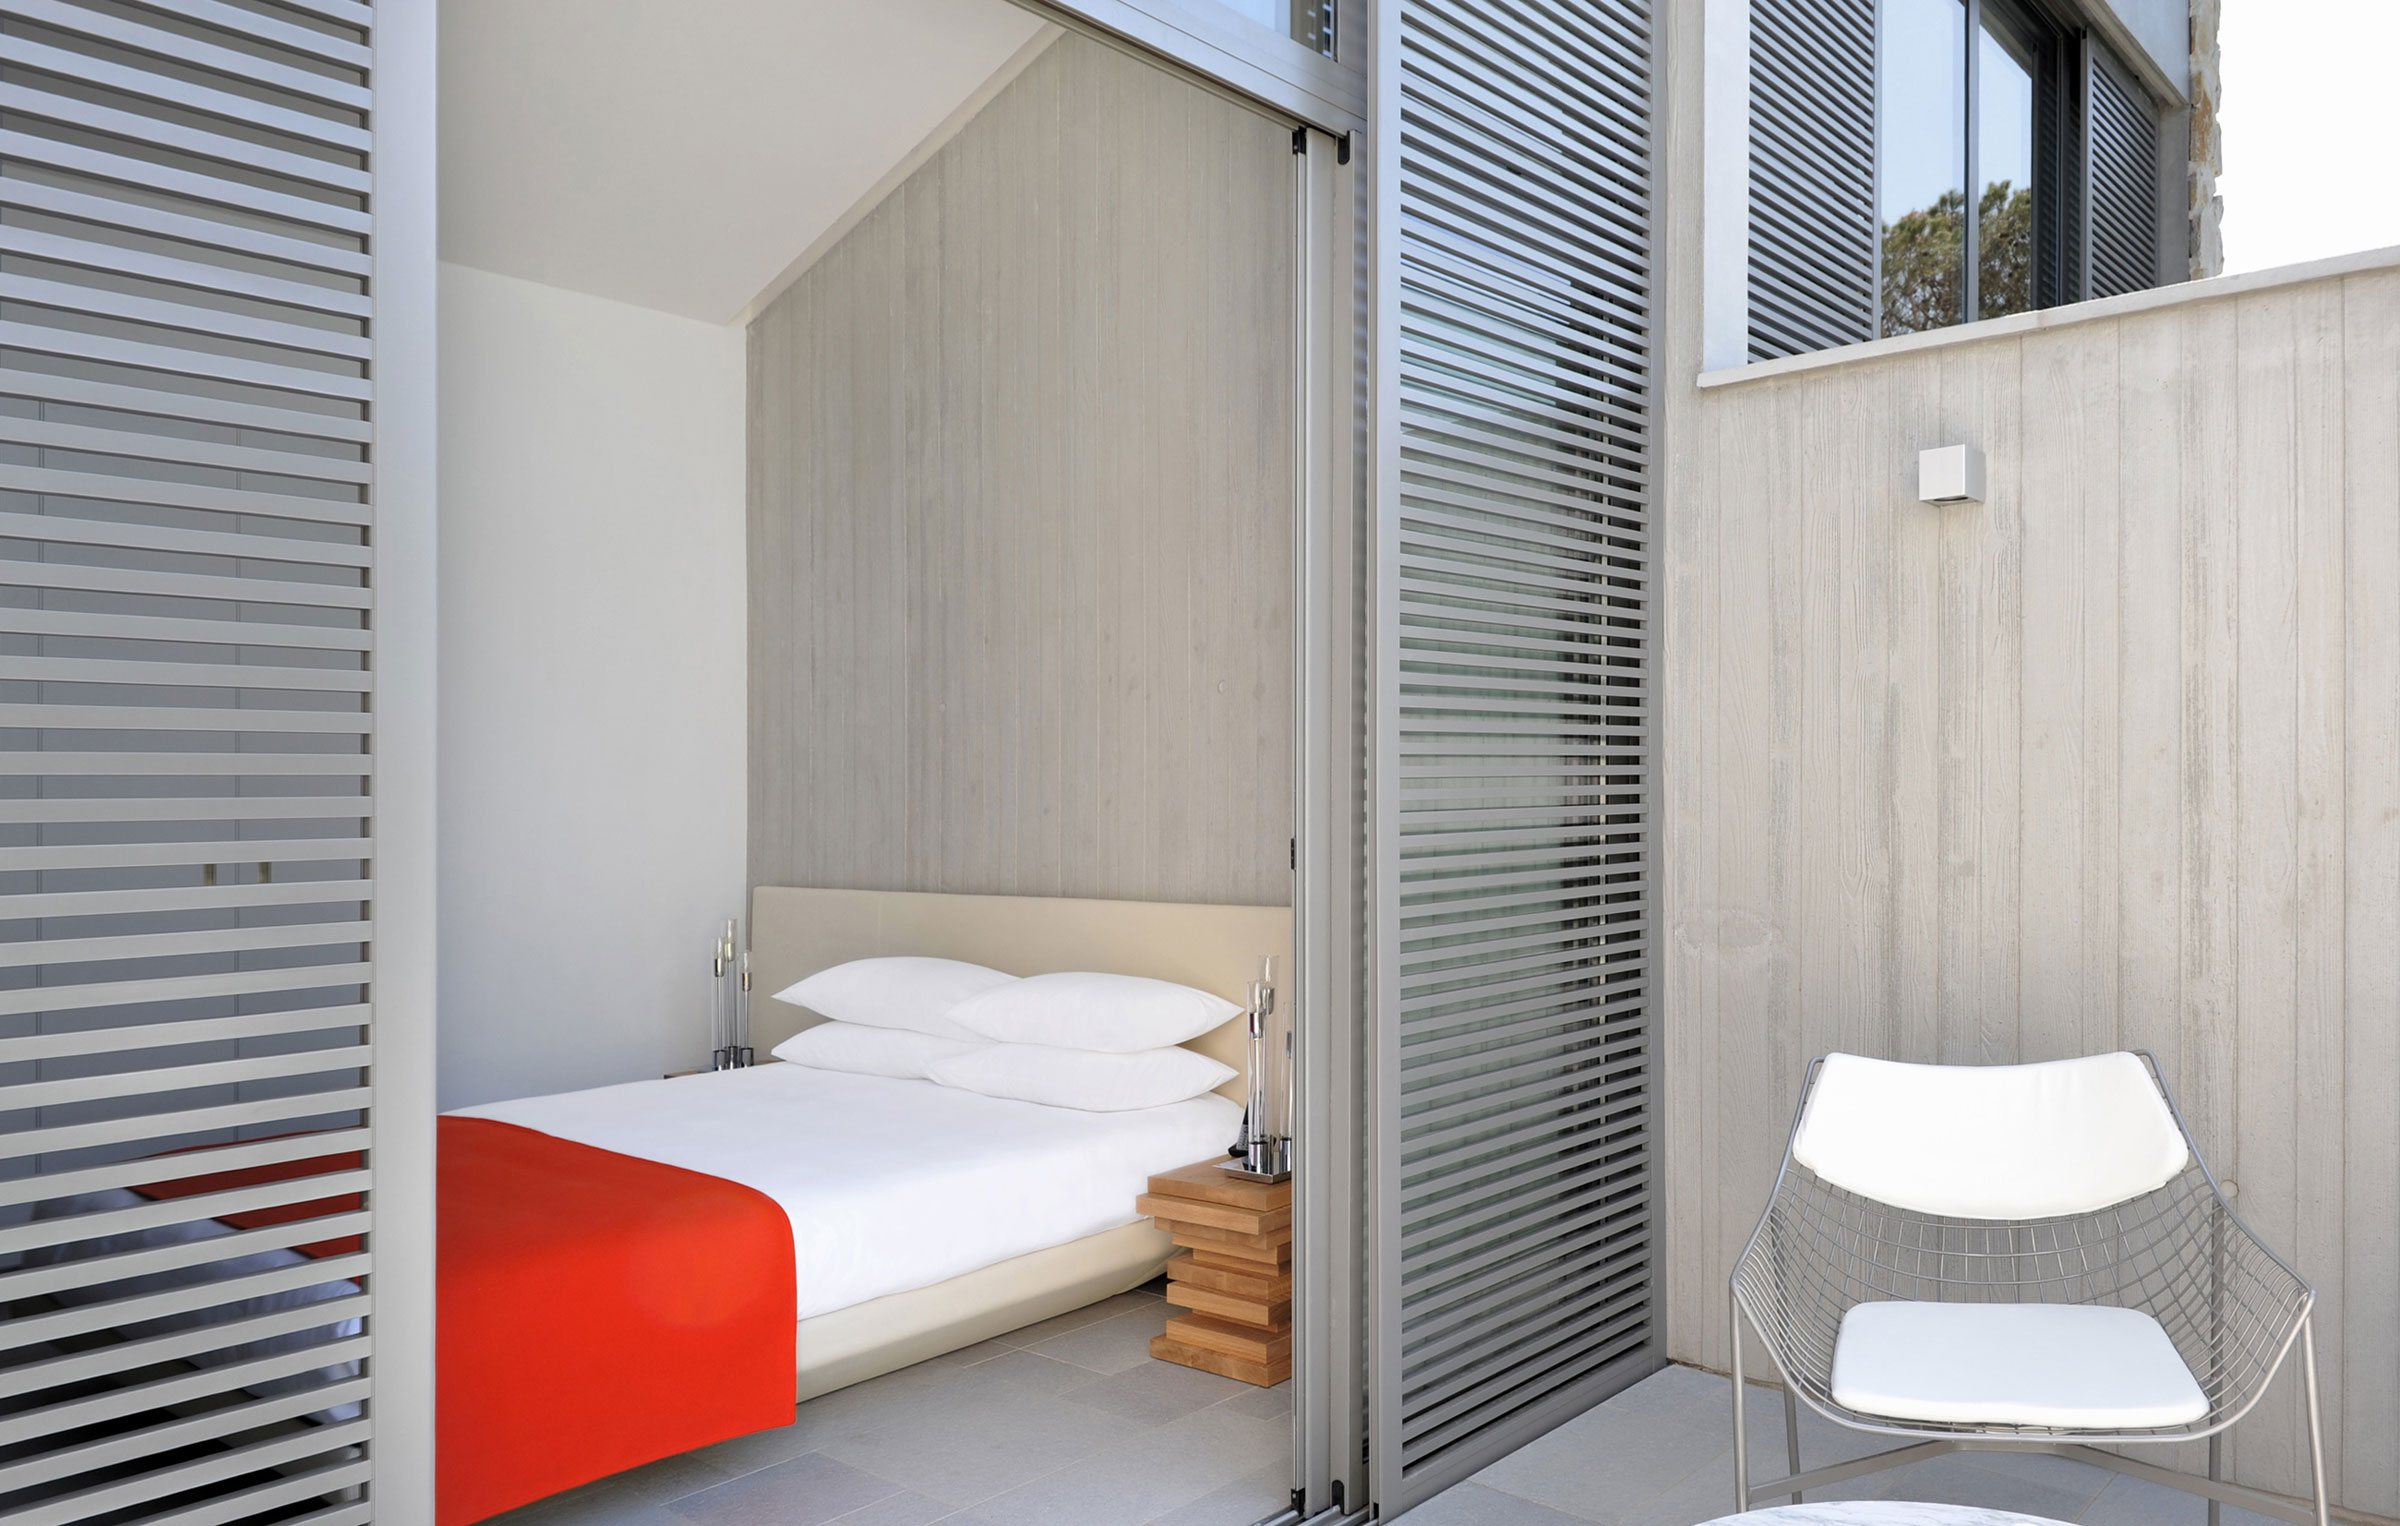 the hôtel sezz saint-tropezstudio ory - caandesign